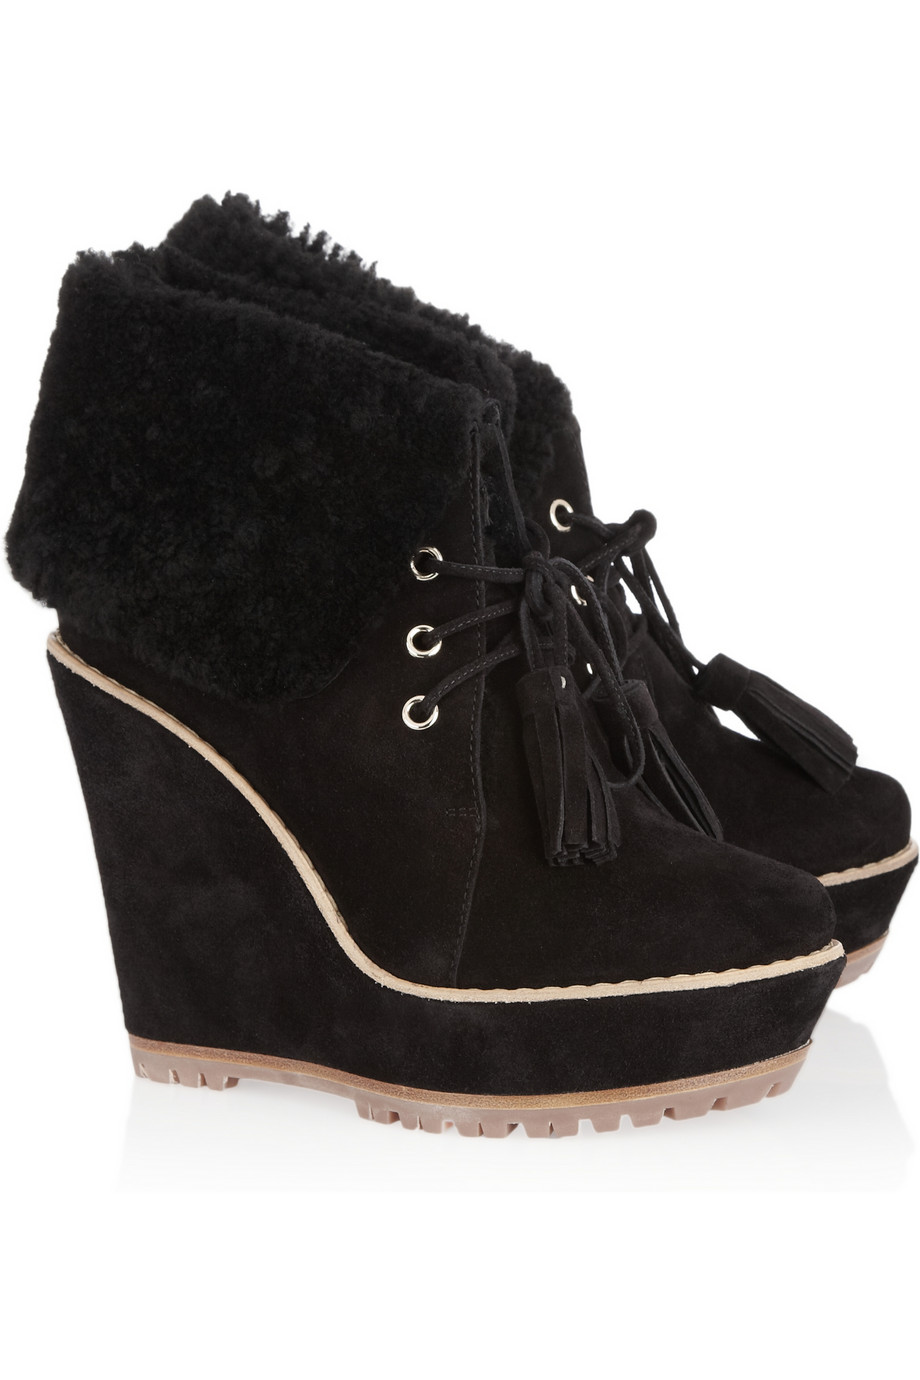 mulberry suede wedge ankle boots in black lyst